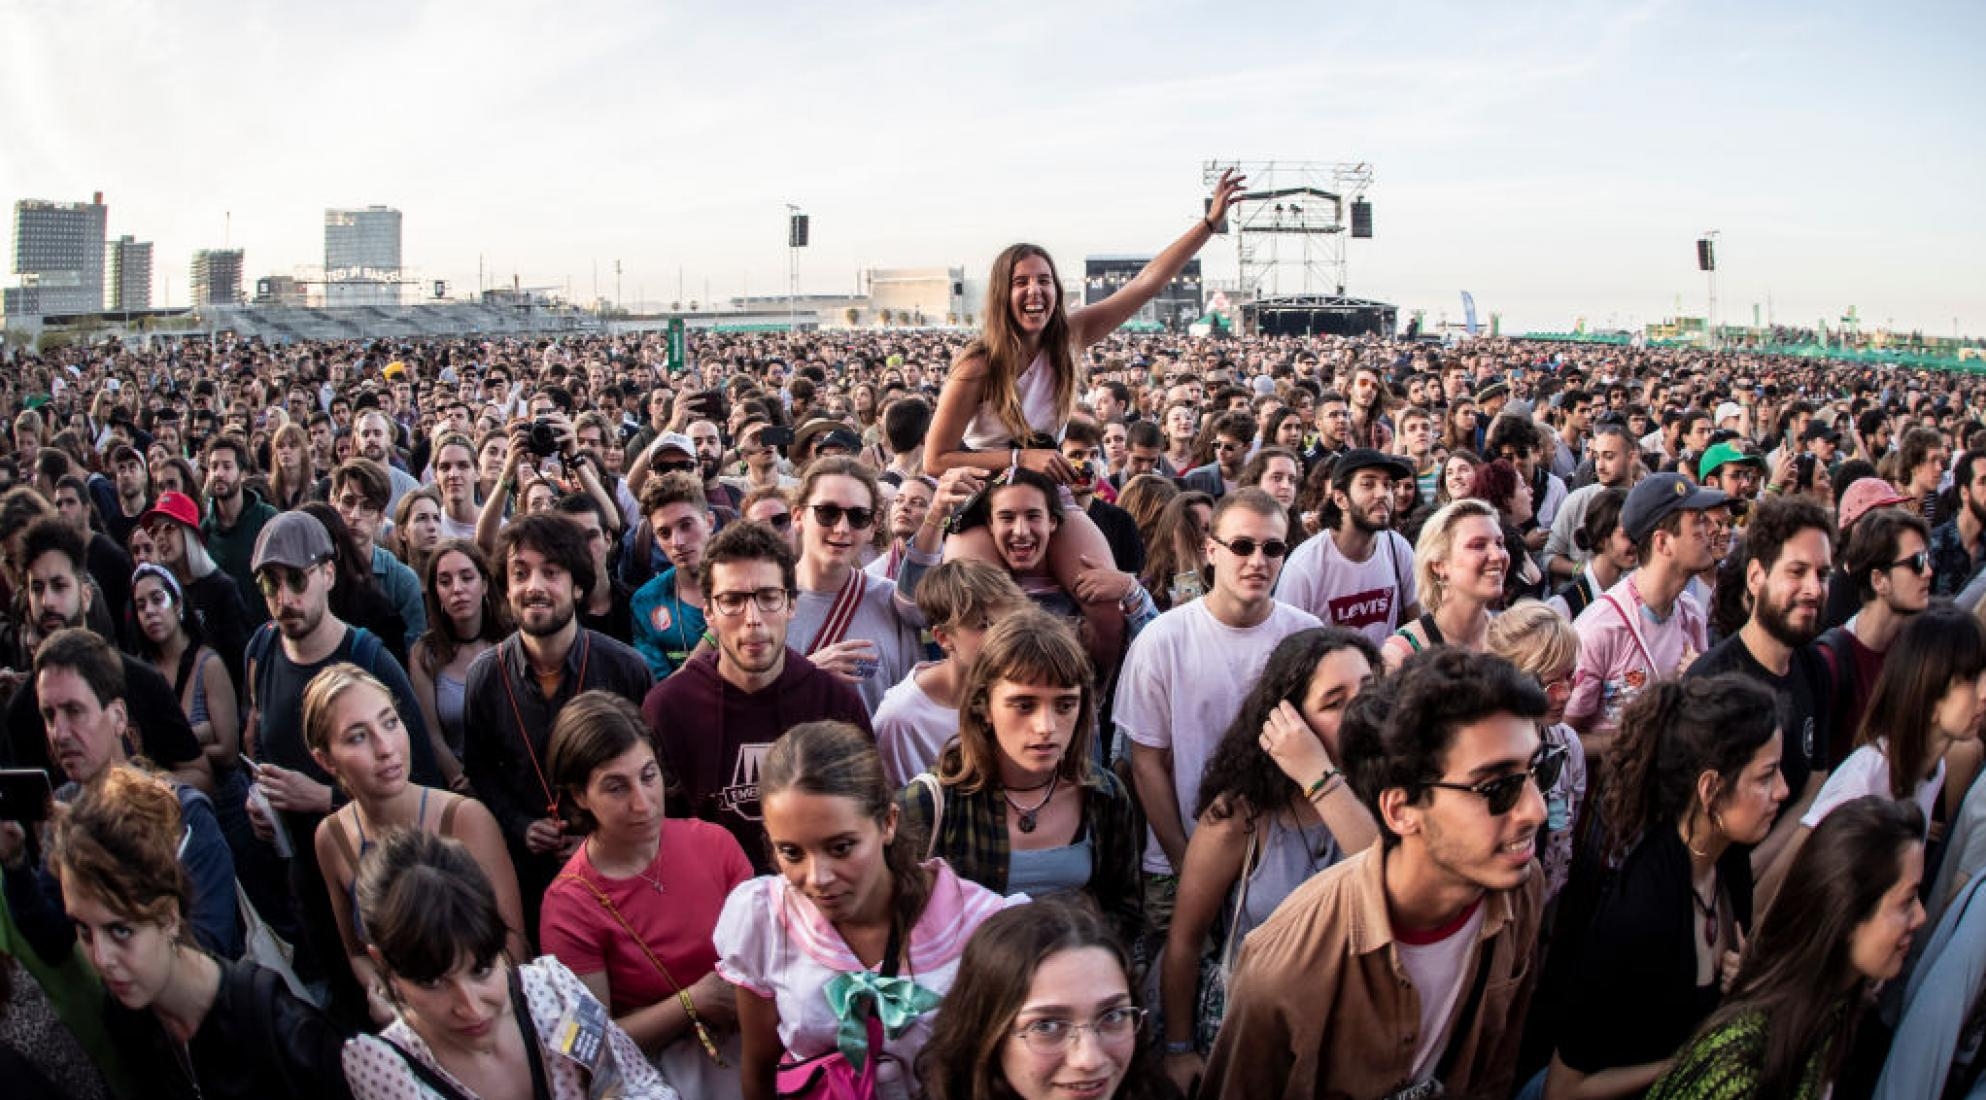 Crowd shot at Primavera Sound Barcelona 2019